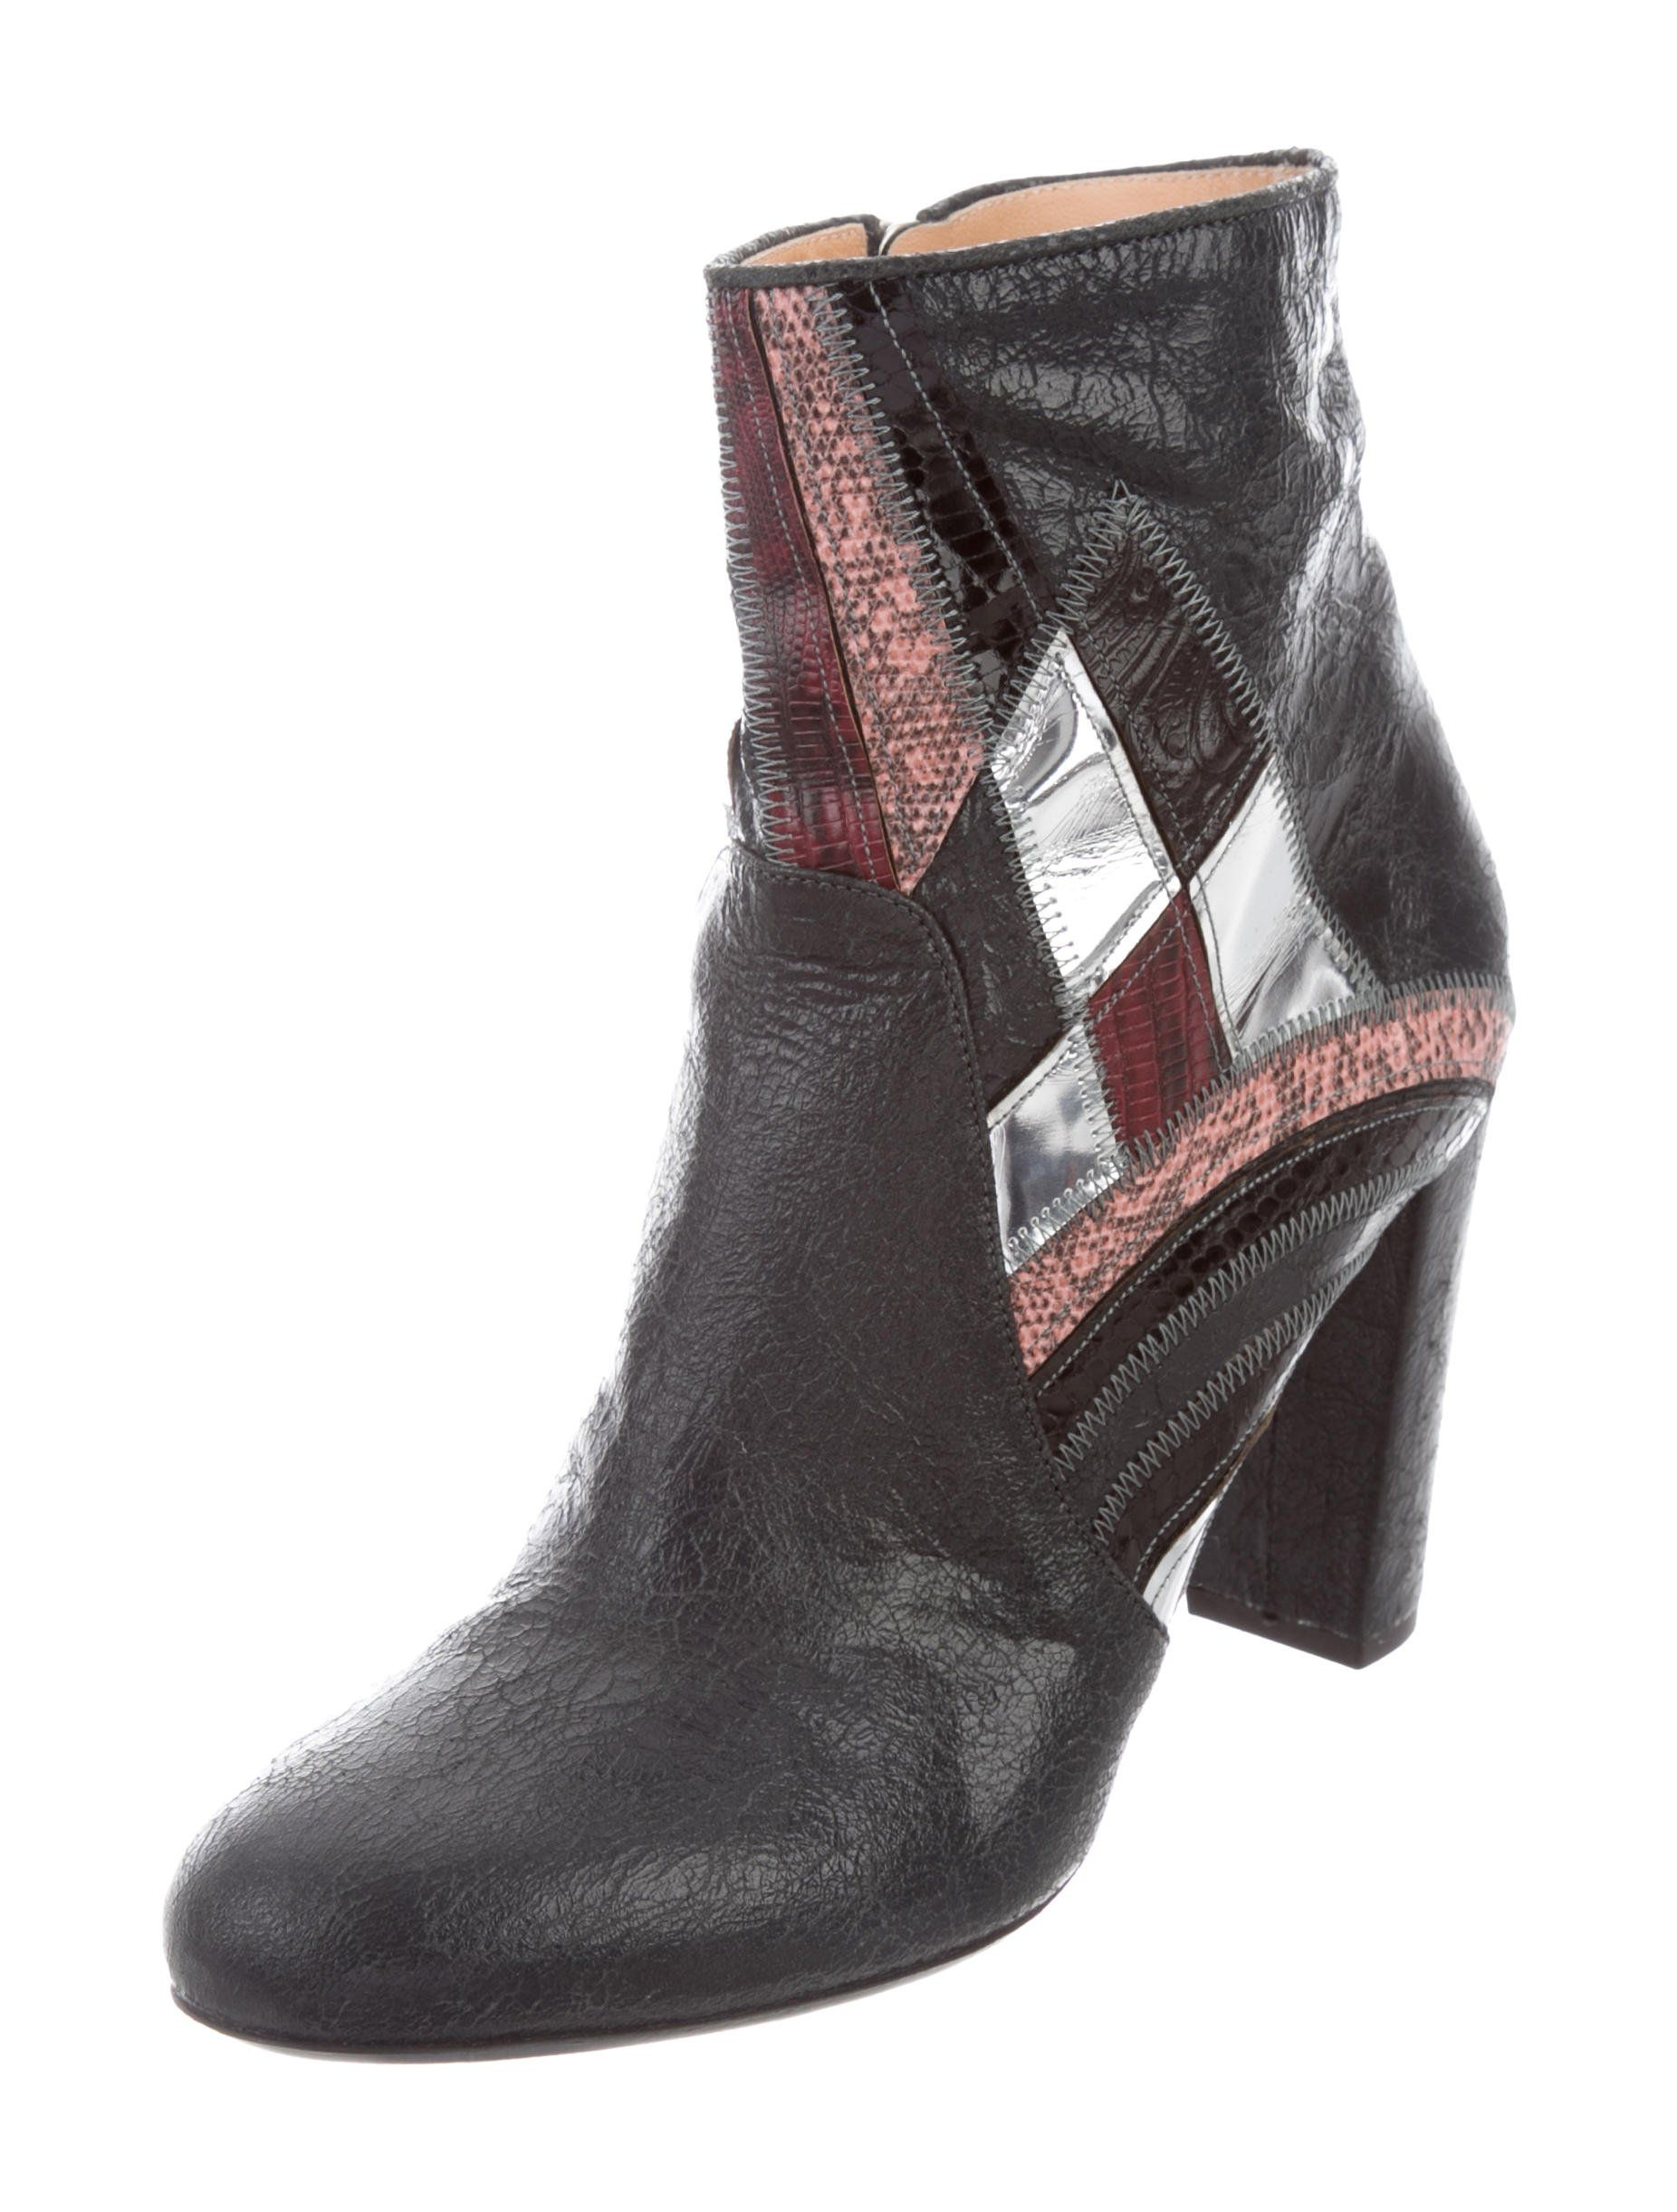 cb73522301 Blue crinkle leather and multicolor embossed leather Dries Van Noten ankle  boots with round toes